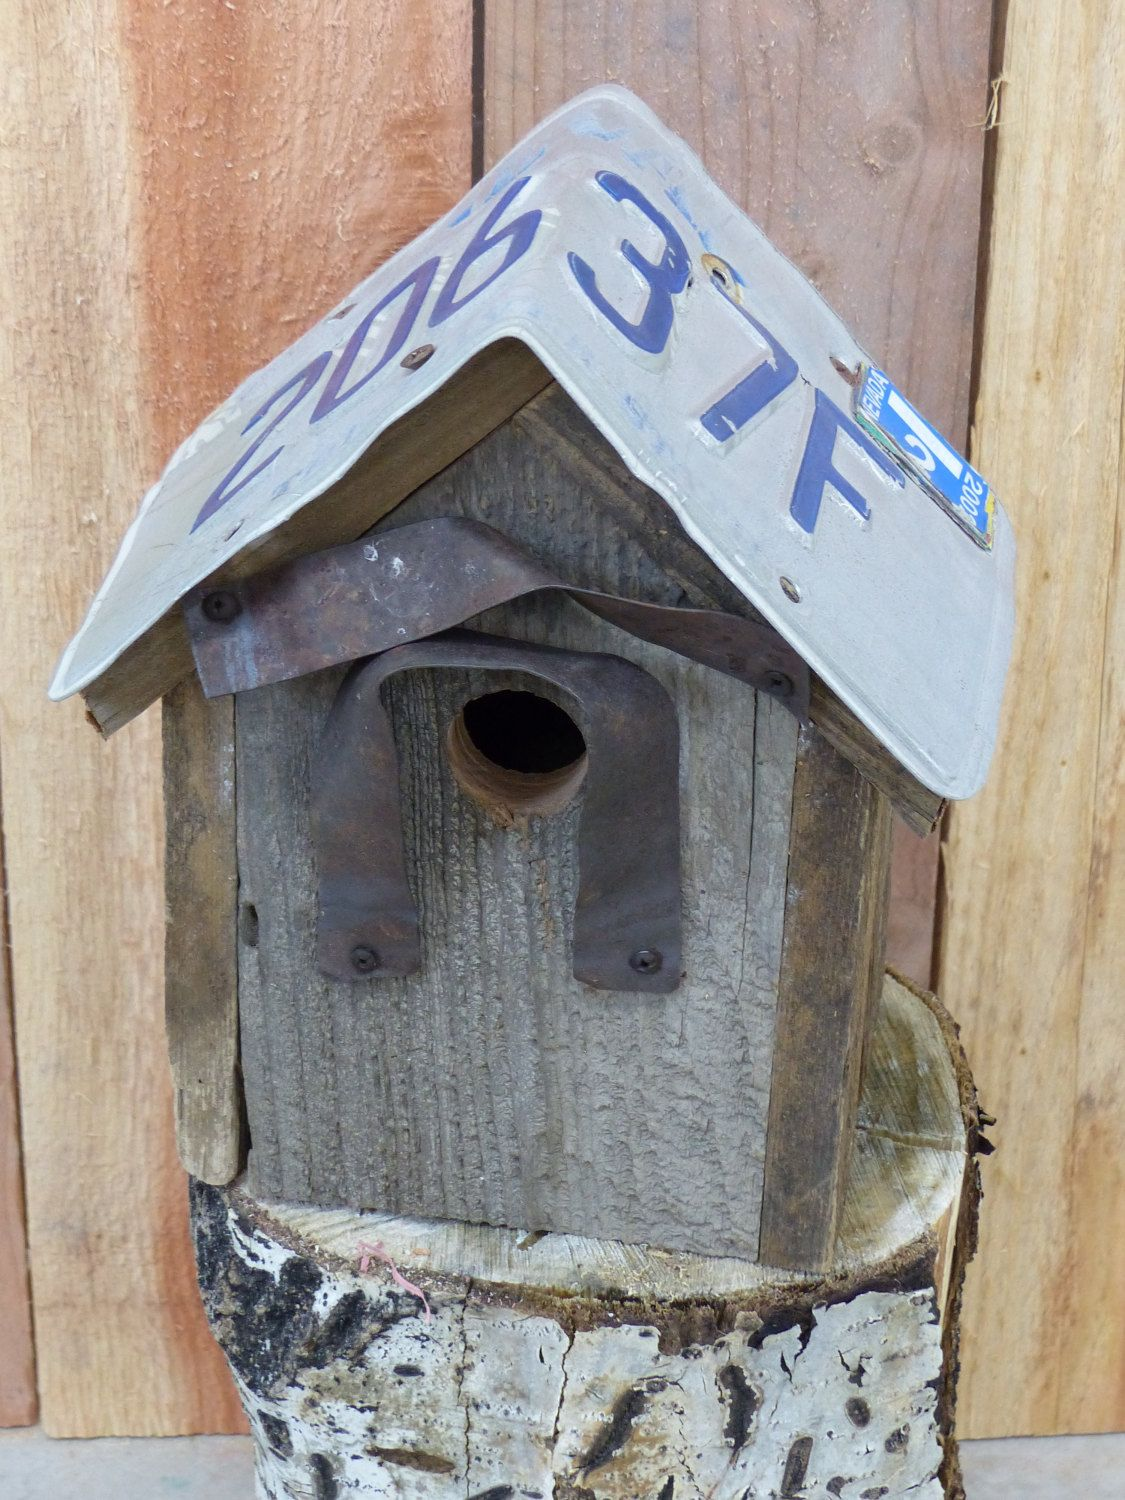 Birdhouse Handcrafted Rustic Cedar with License Plate roof by 3FeatheredFriends on Etsy